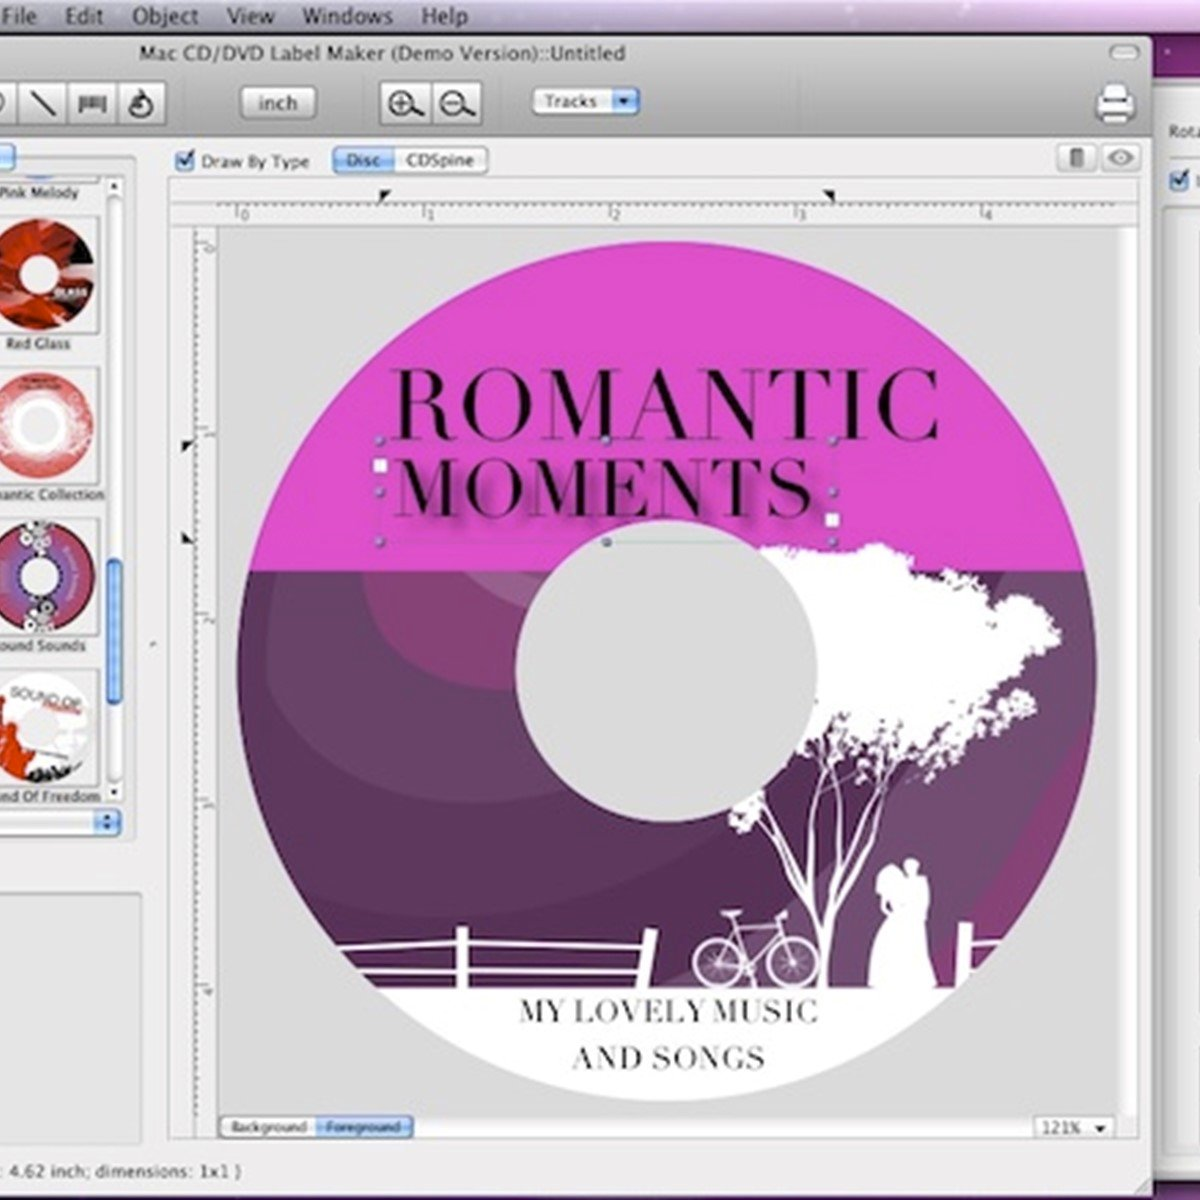 Mac cd dvd label maker alternatives and similar software for Dvd cover template mac